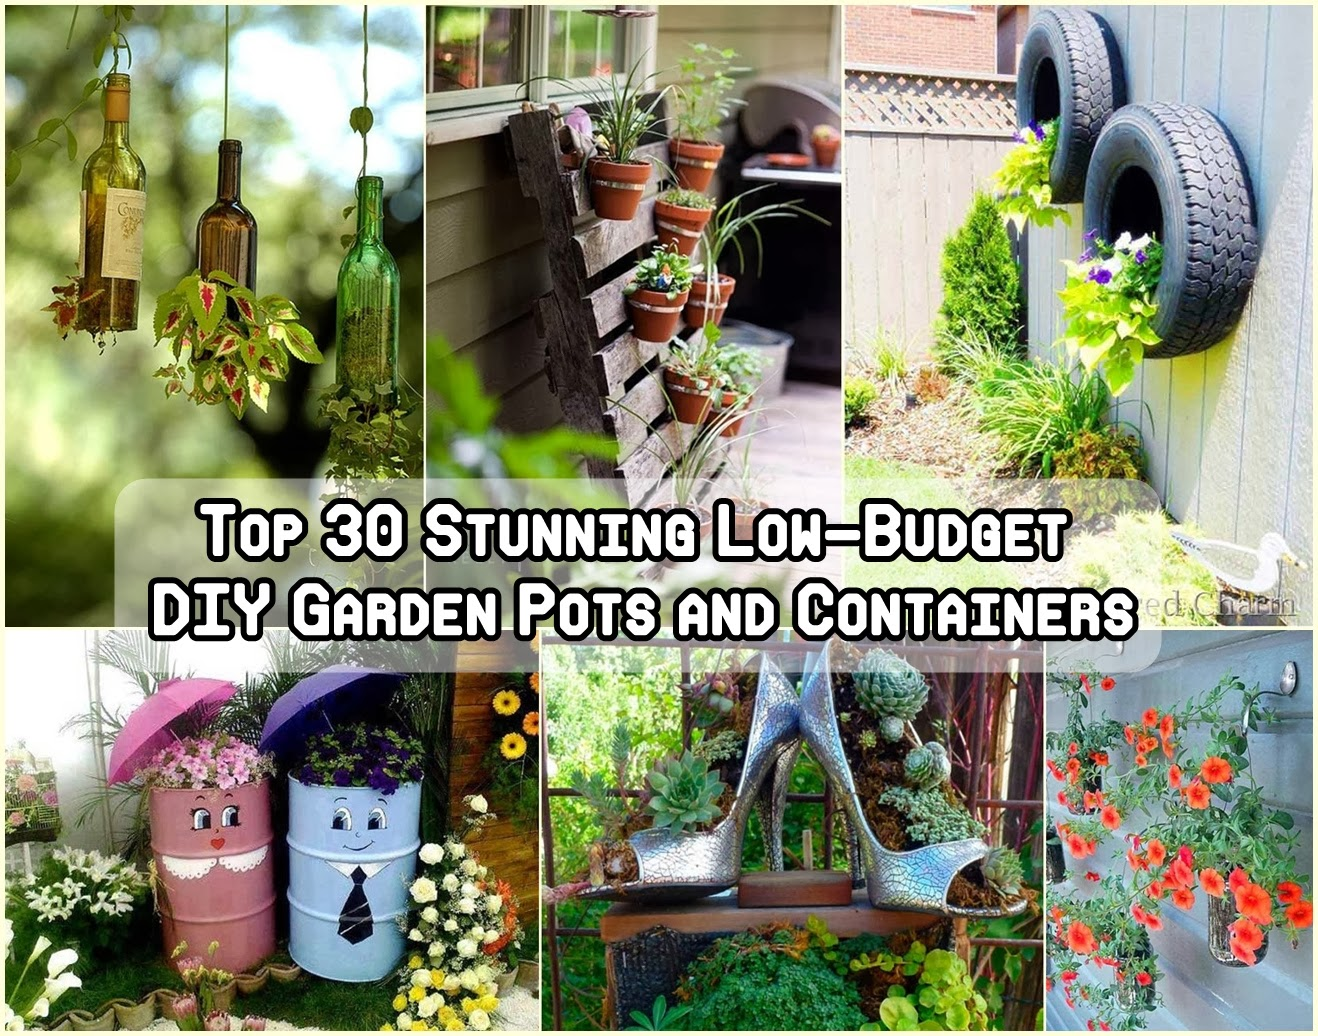 Top 30 amazing low budget diy garden pots and containers Diy garden ideas on a budget